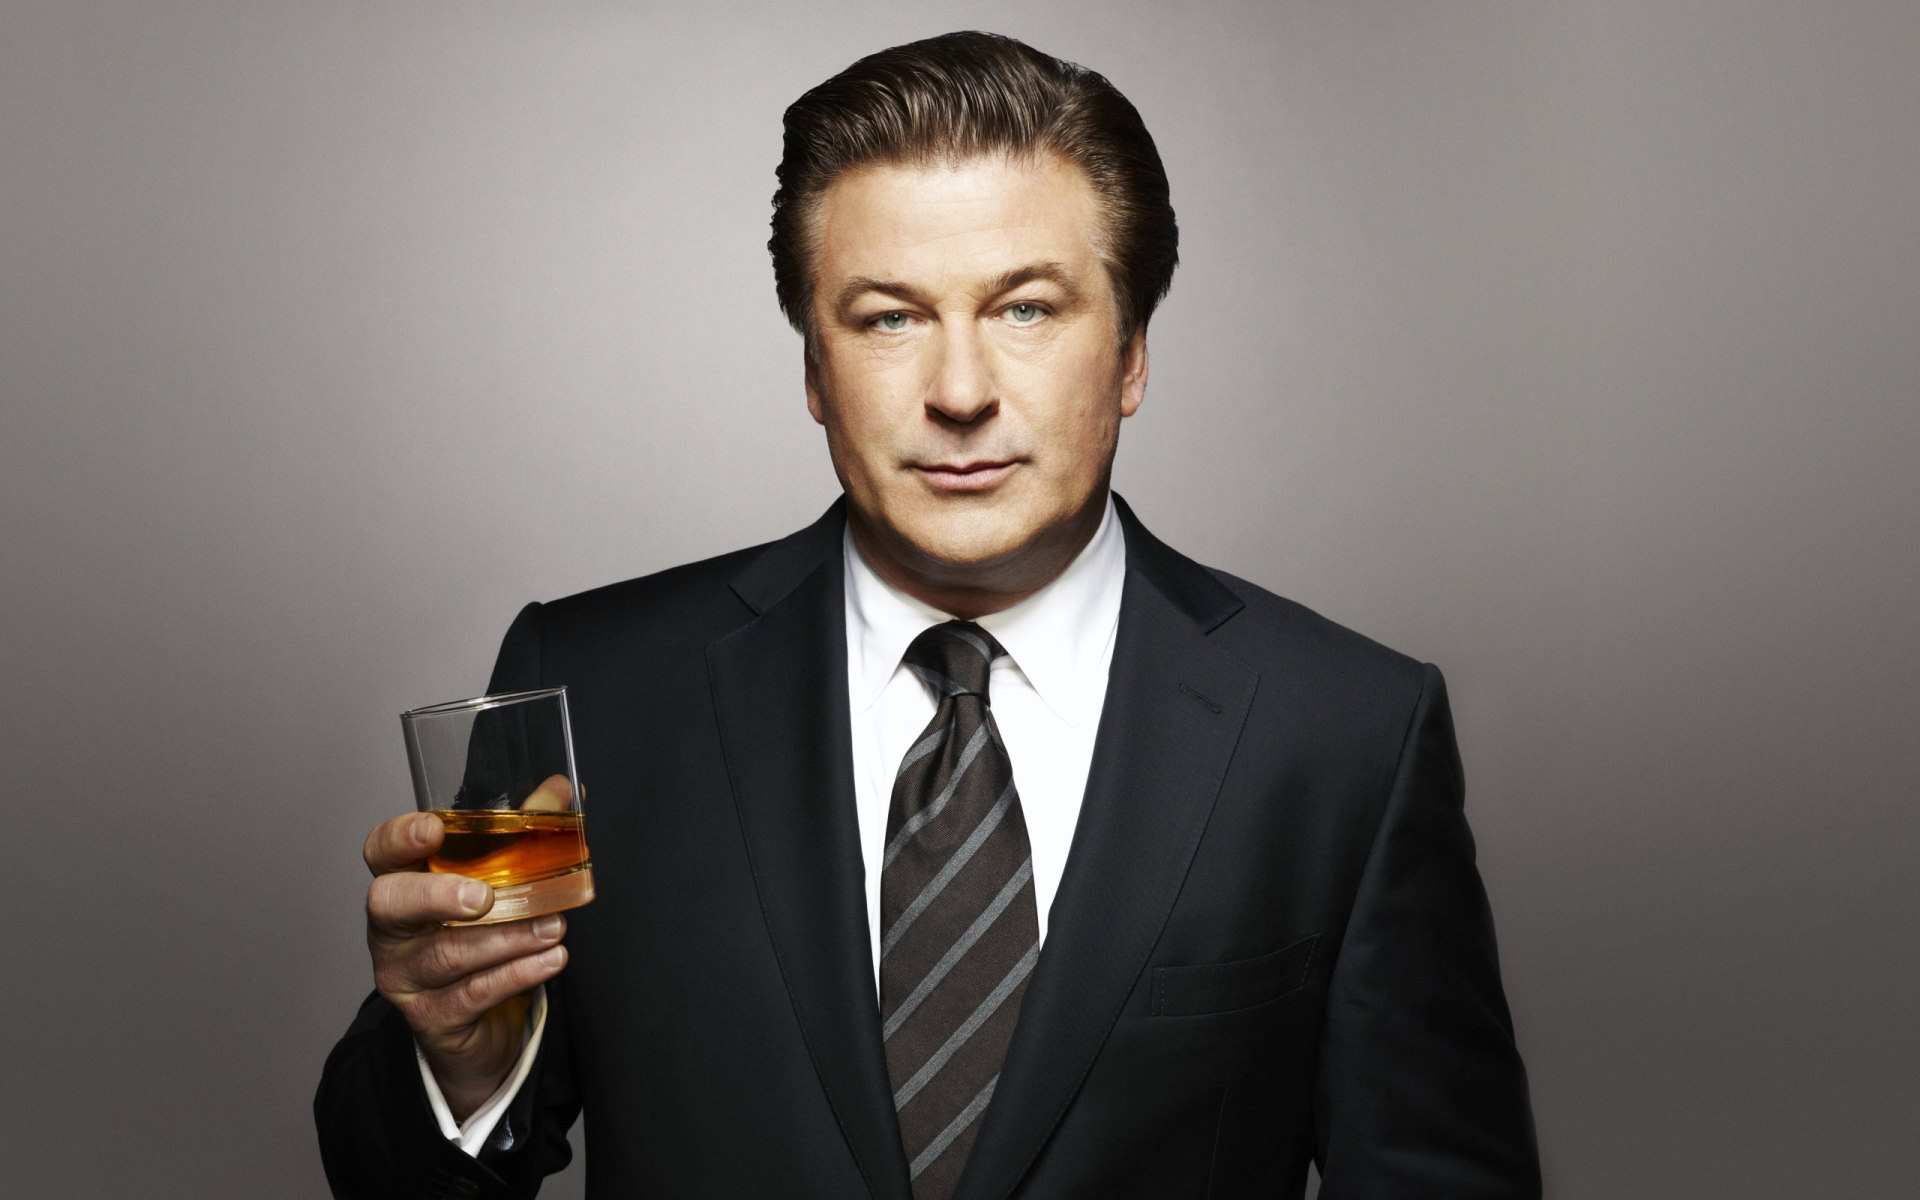 Alec Baldwin Wallpapers Description Alec Baldwin Wallpaper is a hi res Wallpaper for pc